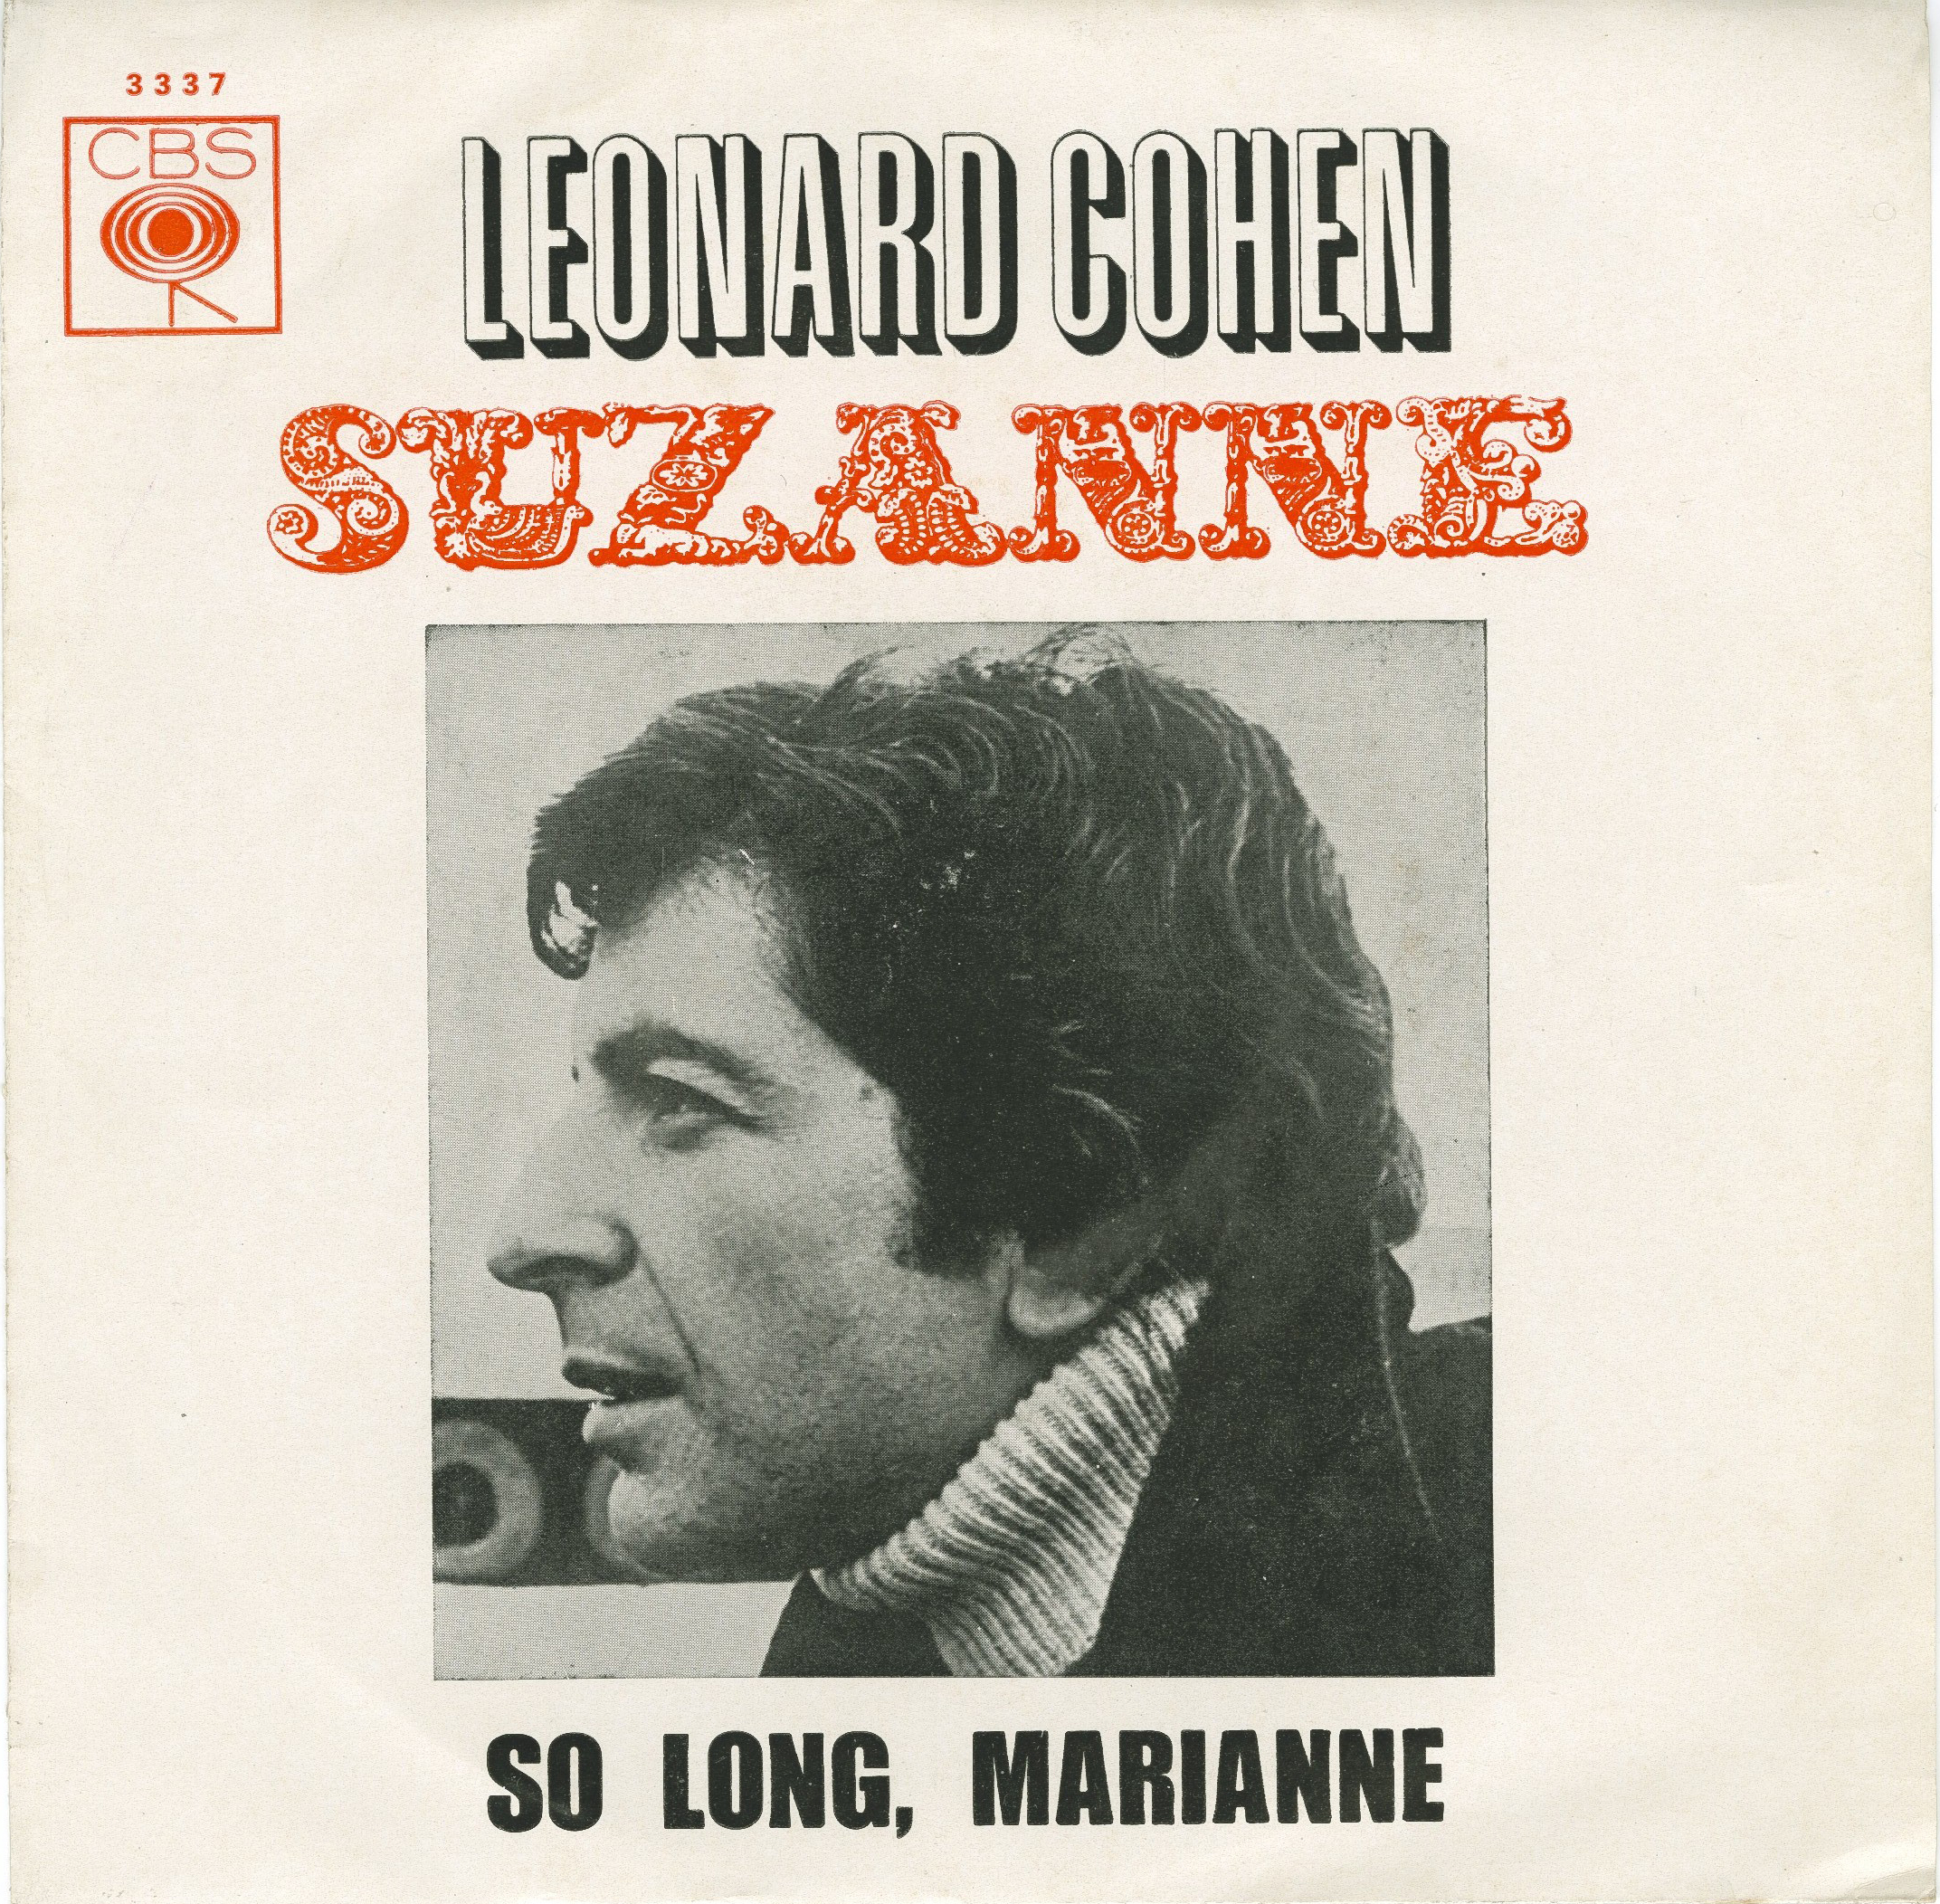 ihlen single personals Marianne stang ihlen and  story behind the death of the beauty who inspired some of leonard cohen's  looks youthful as she cozies up to daddy yankee at single.